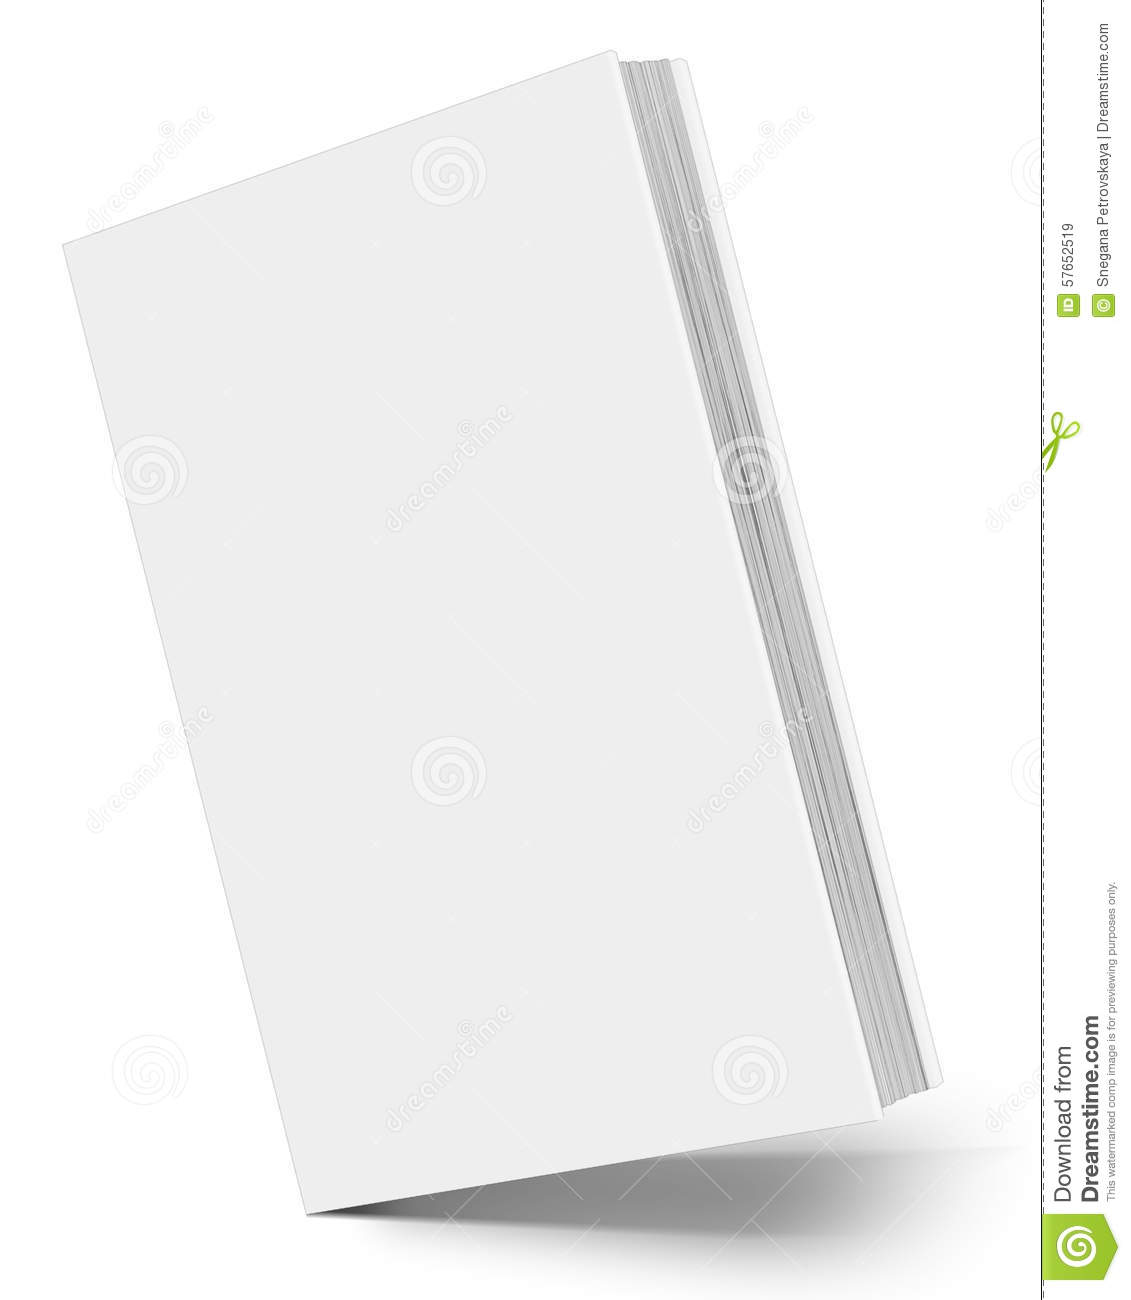 Hardcover Drawing Book : Book stock illustration image